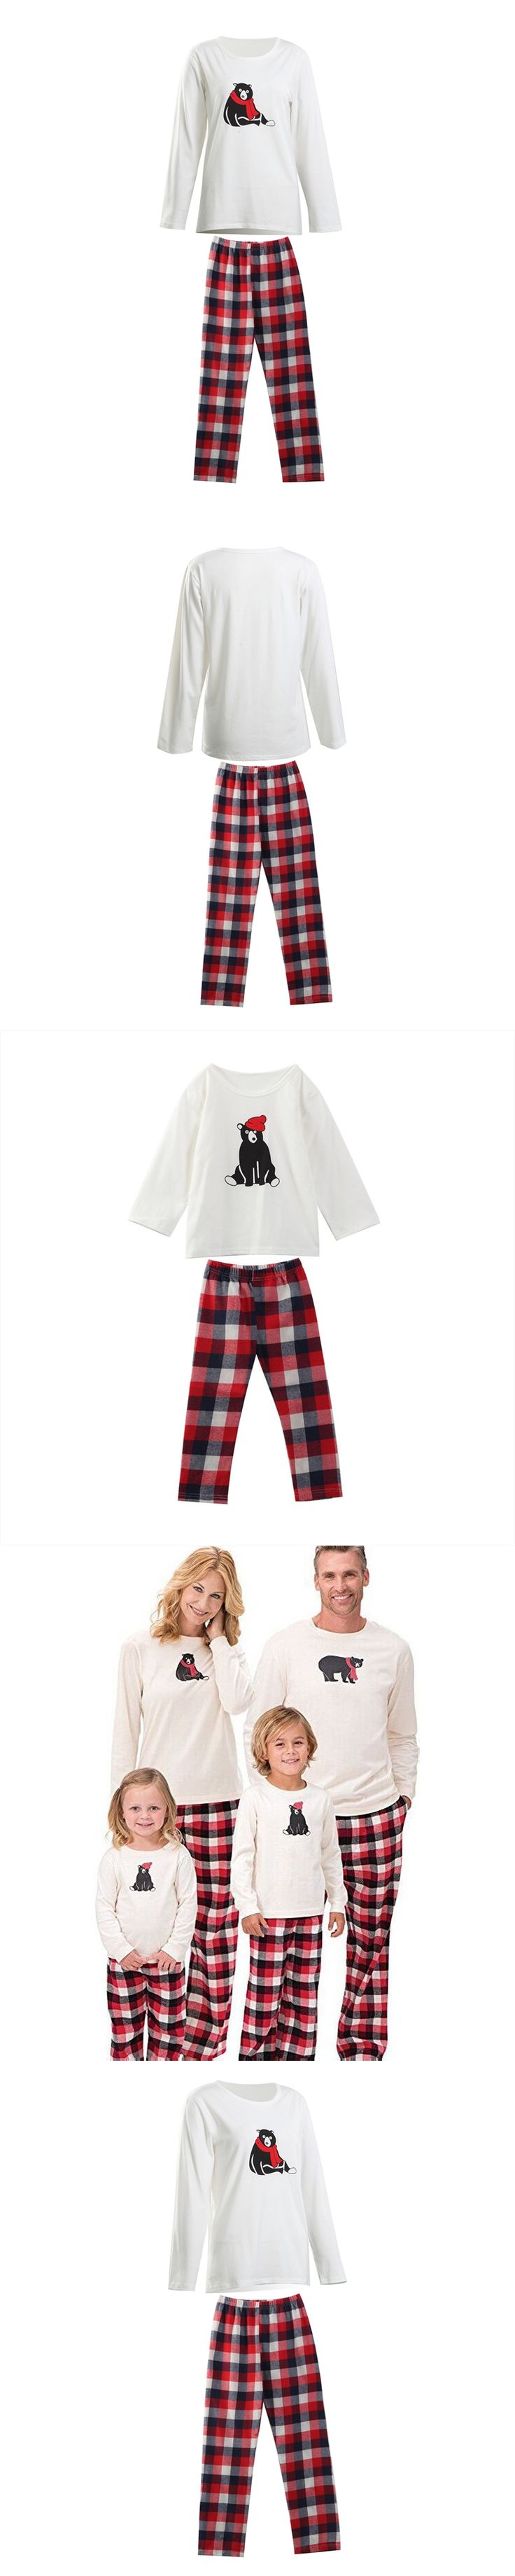 Family Matching Christmas Pajamas PJs Sets 2017 New Xmas Men Women Kid Sleepwear Nightwear Cartoon Hot Sale Family Match PJS Set